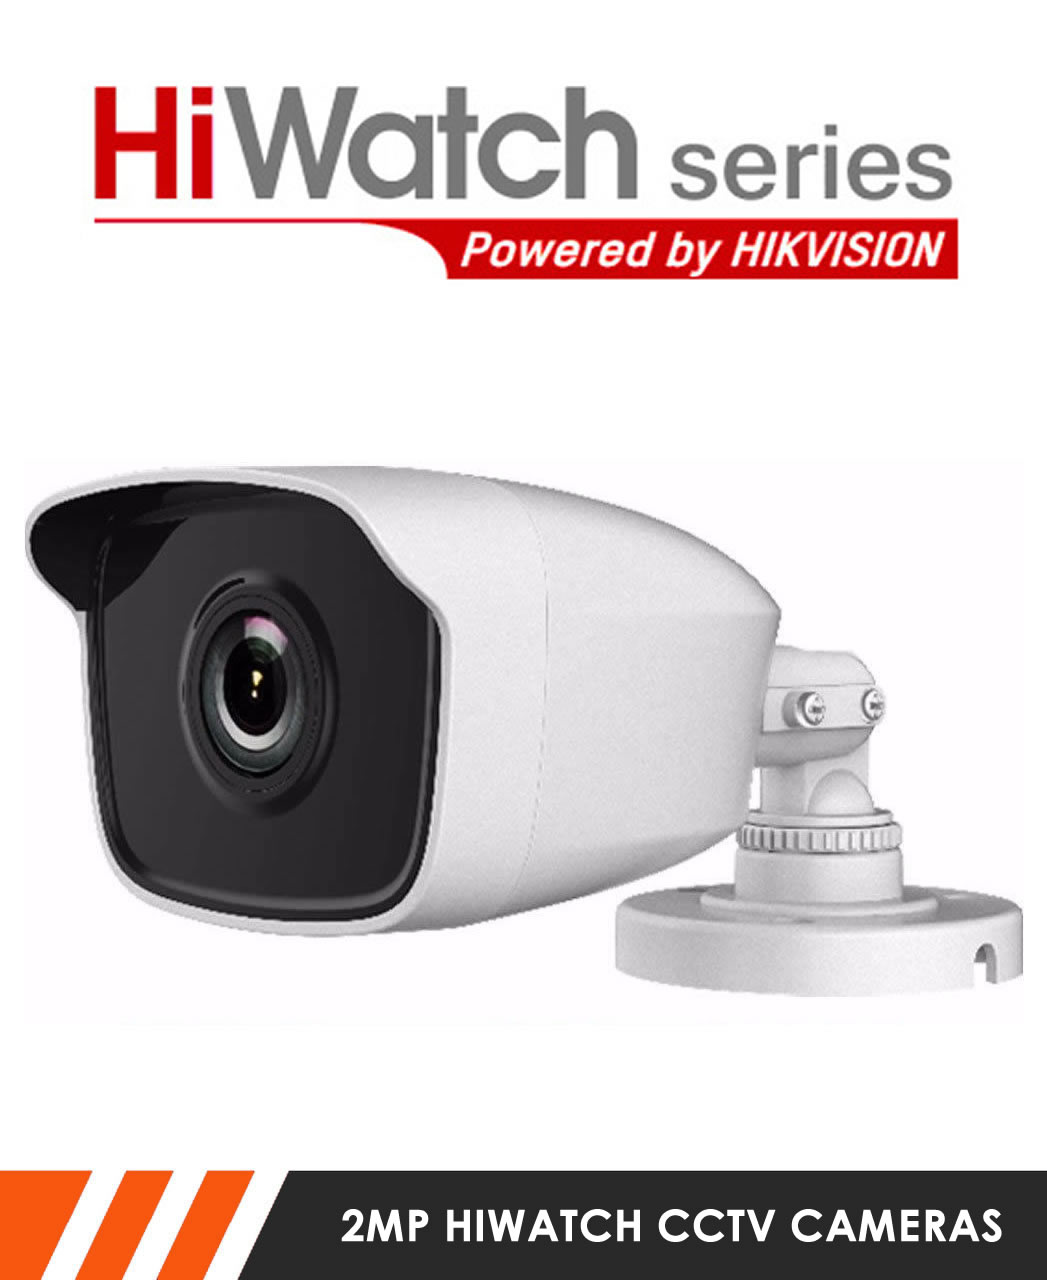 2MP HiWatch CCTV Cameras